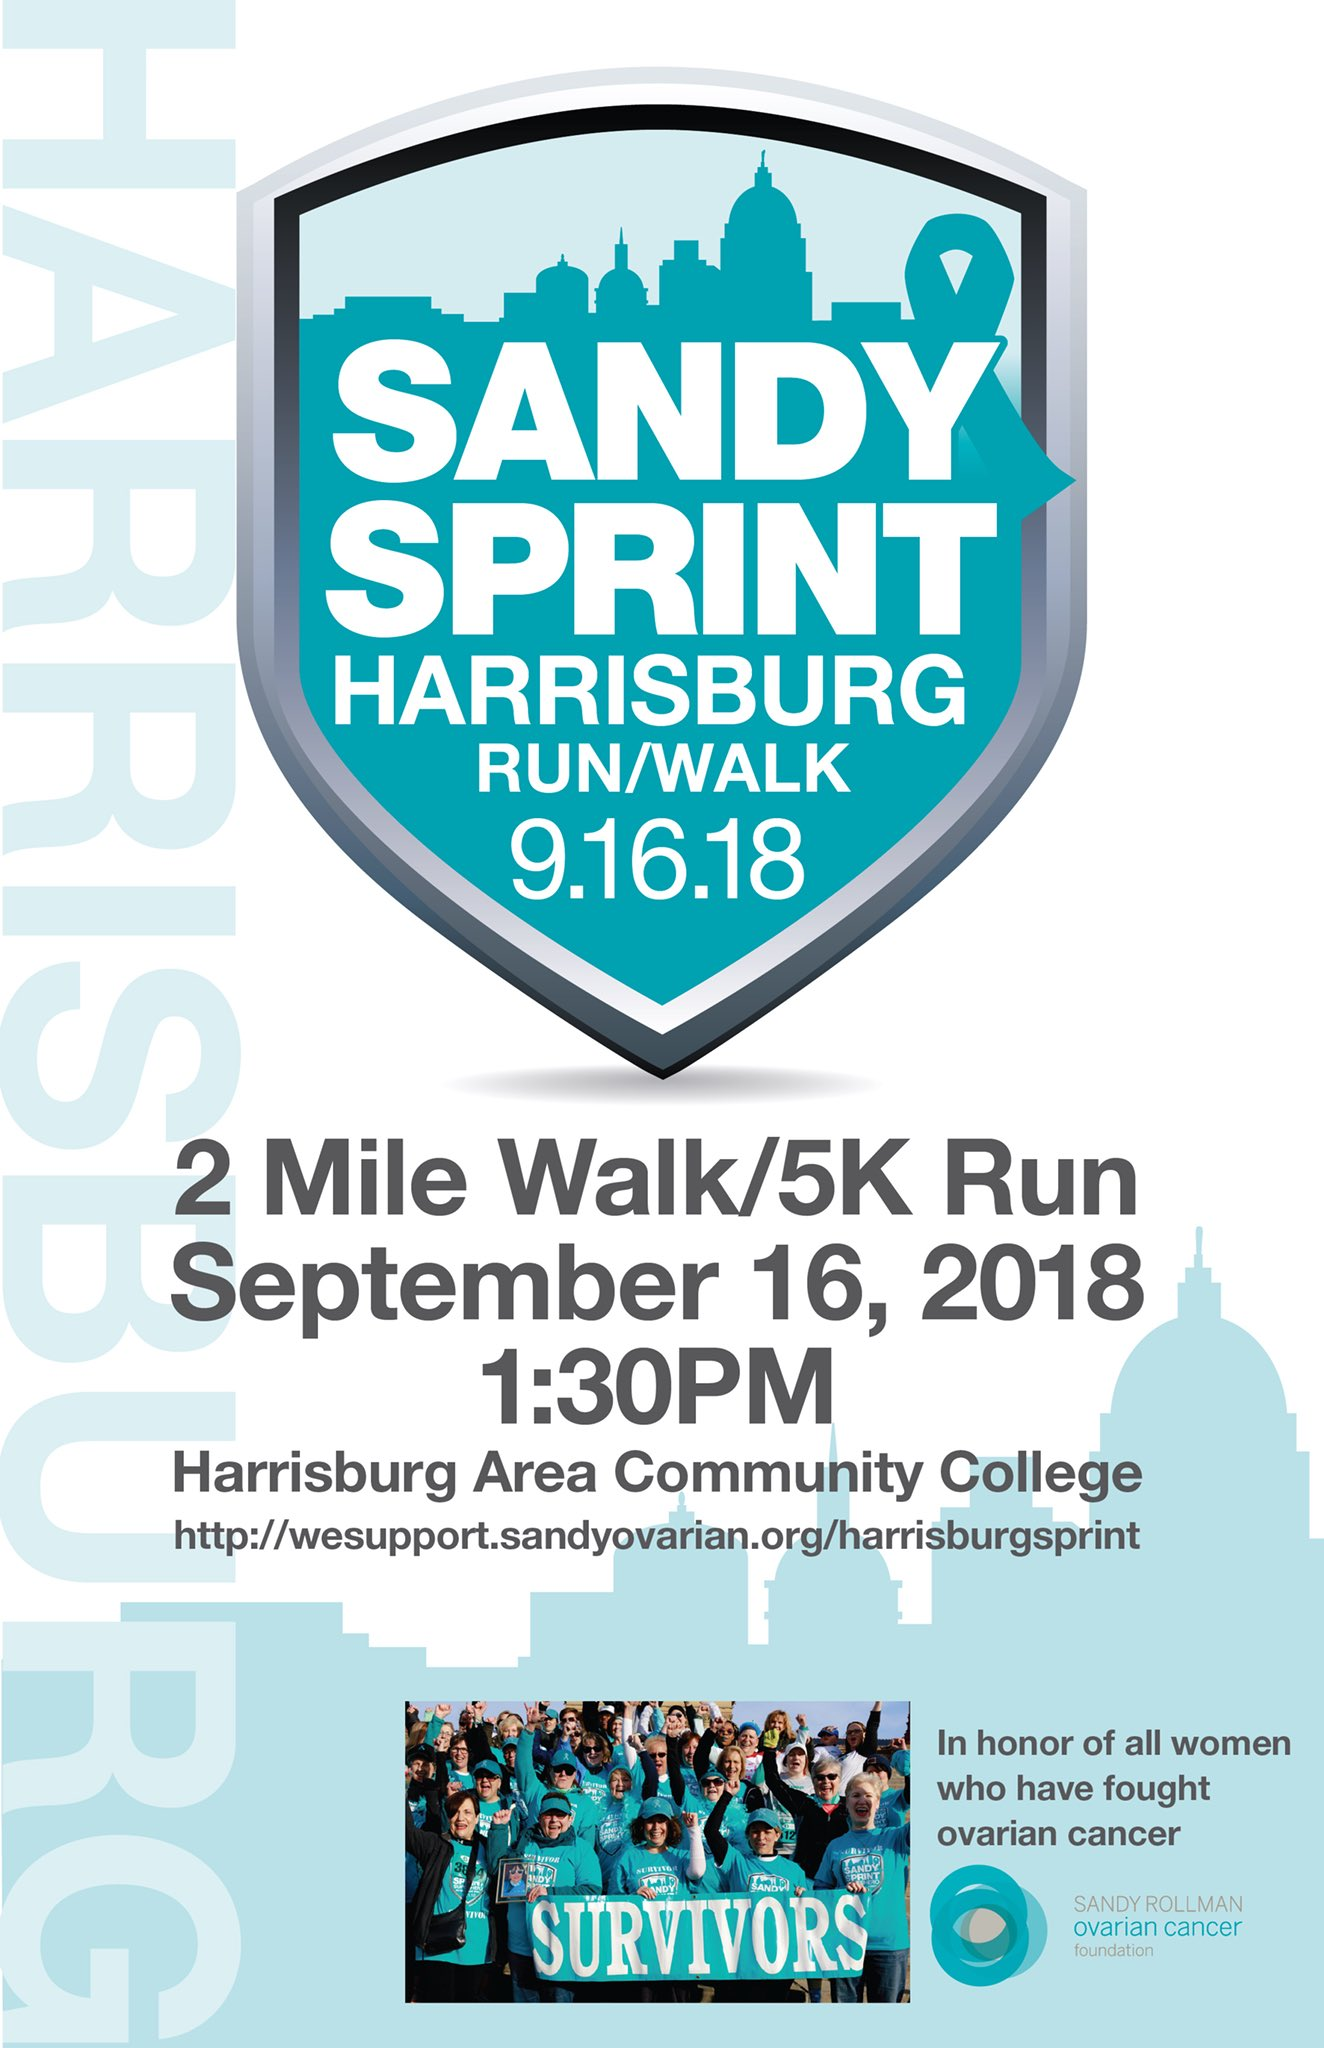 Sandy Rollman Ovarian Cancer Foundation On Twitter The Sandy Sprint Is Heading To Our State Capitol For The First Time On 9 16 Registration Is Now Open At Https T Co Kifcca6ybj 5k Run Walk Ovariancancer Https T Co Fdwfwdaeky